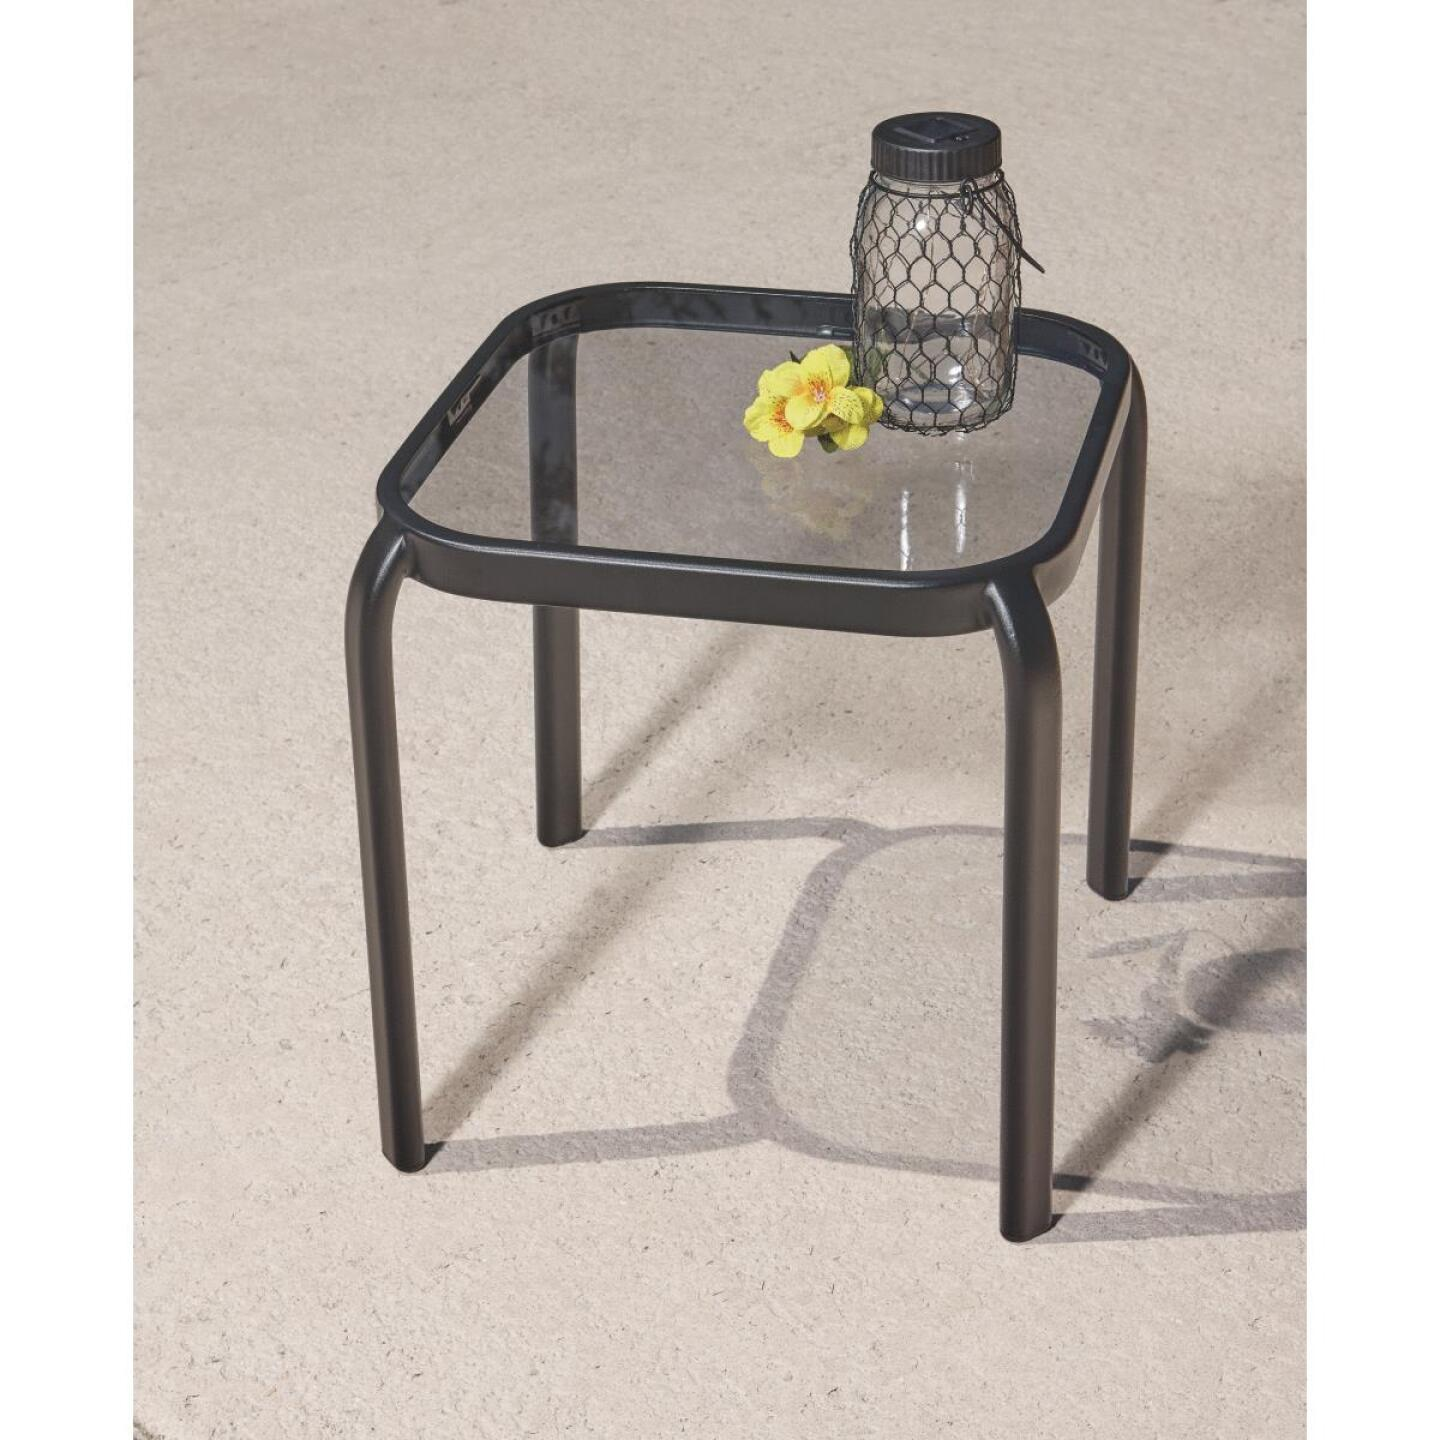 Outdoor Expressions Galveston Side Table Image 3